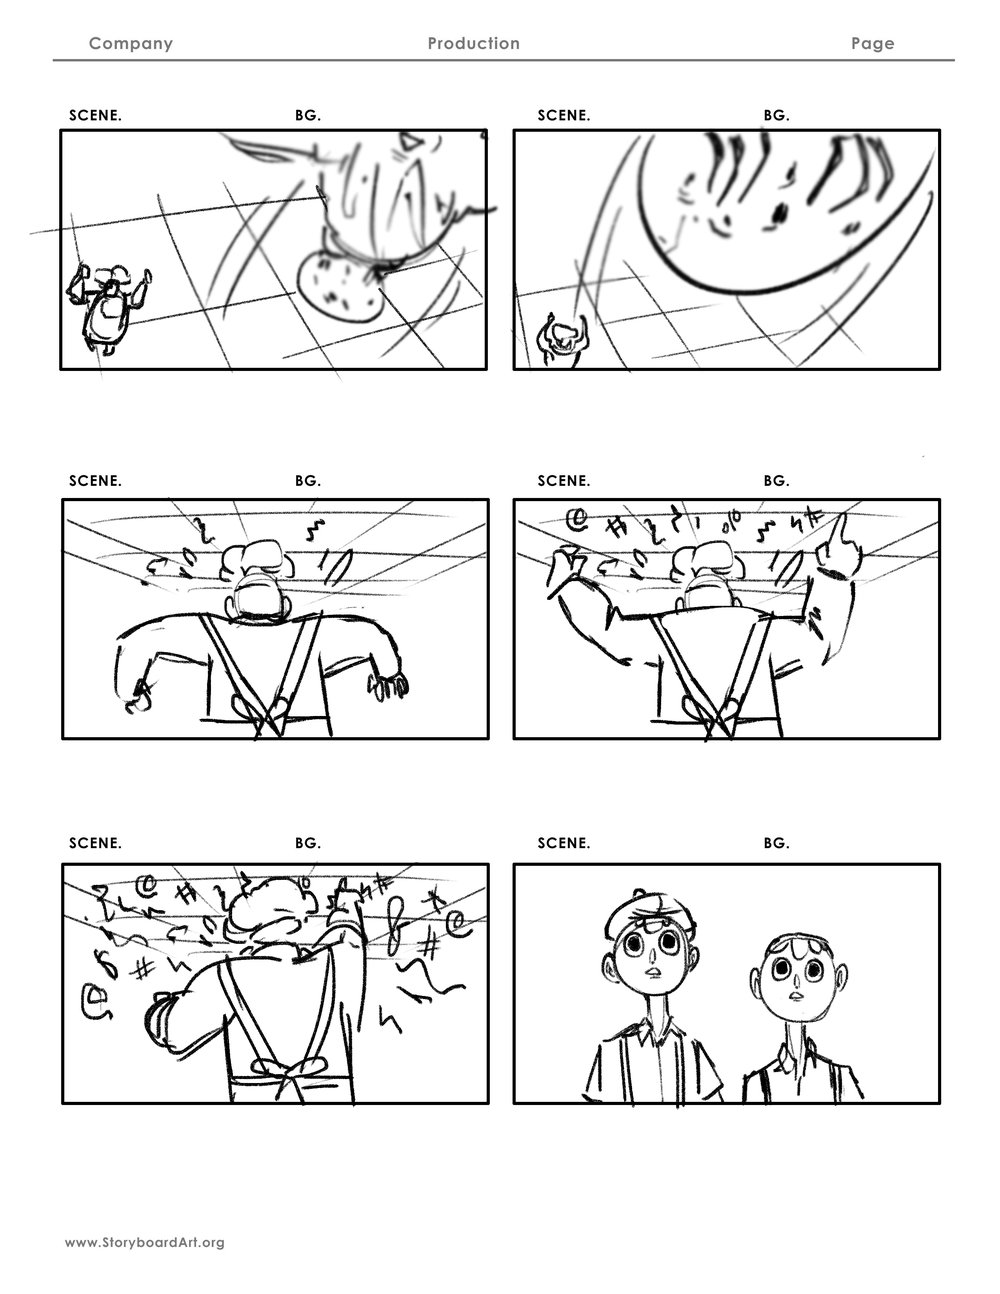 james storyboards page 09.jpg